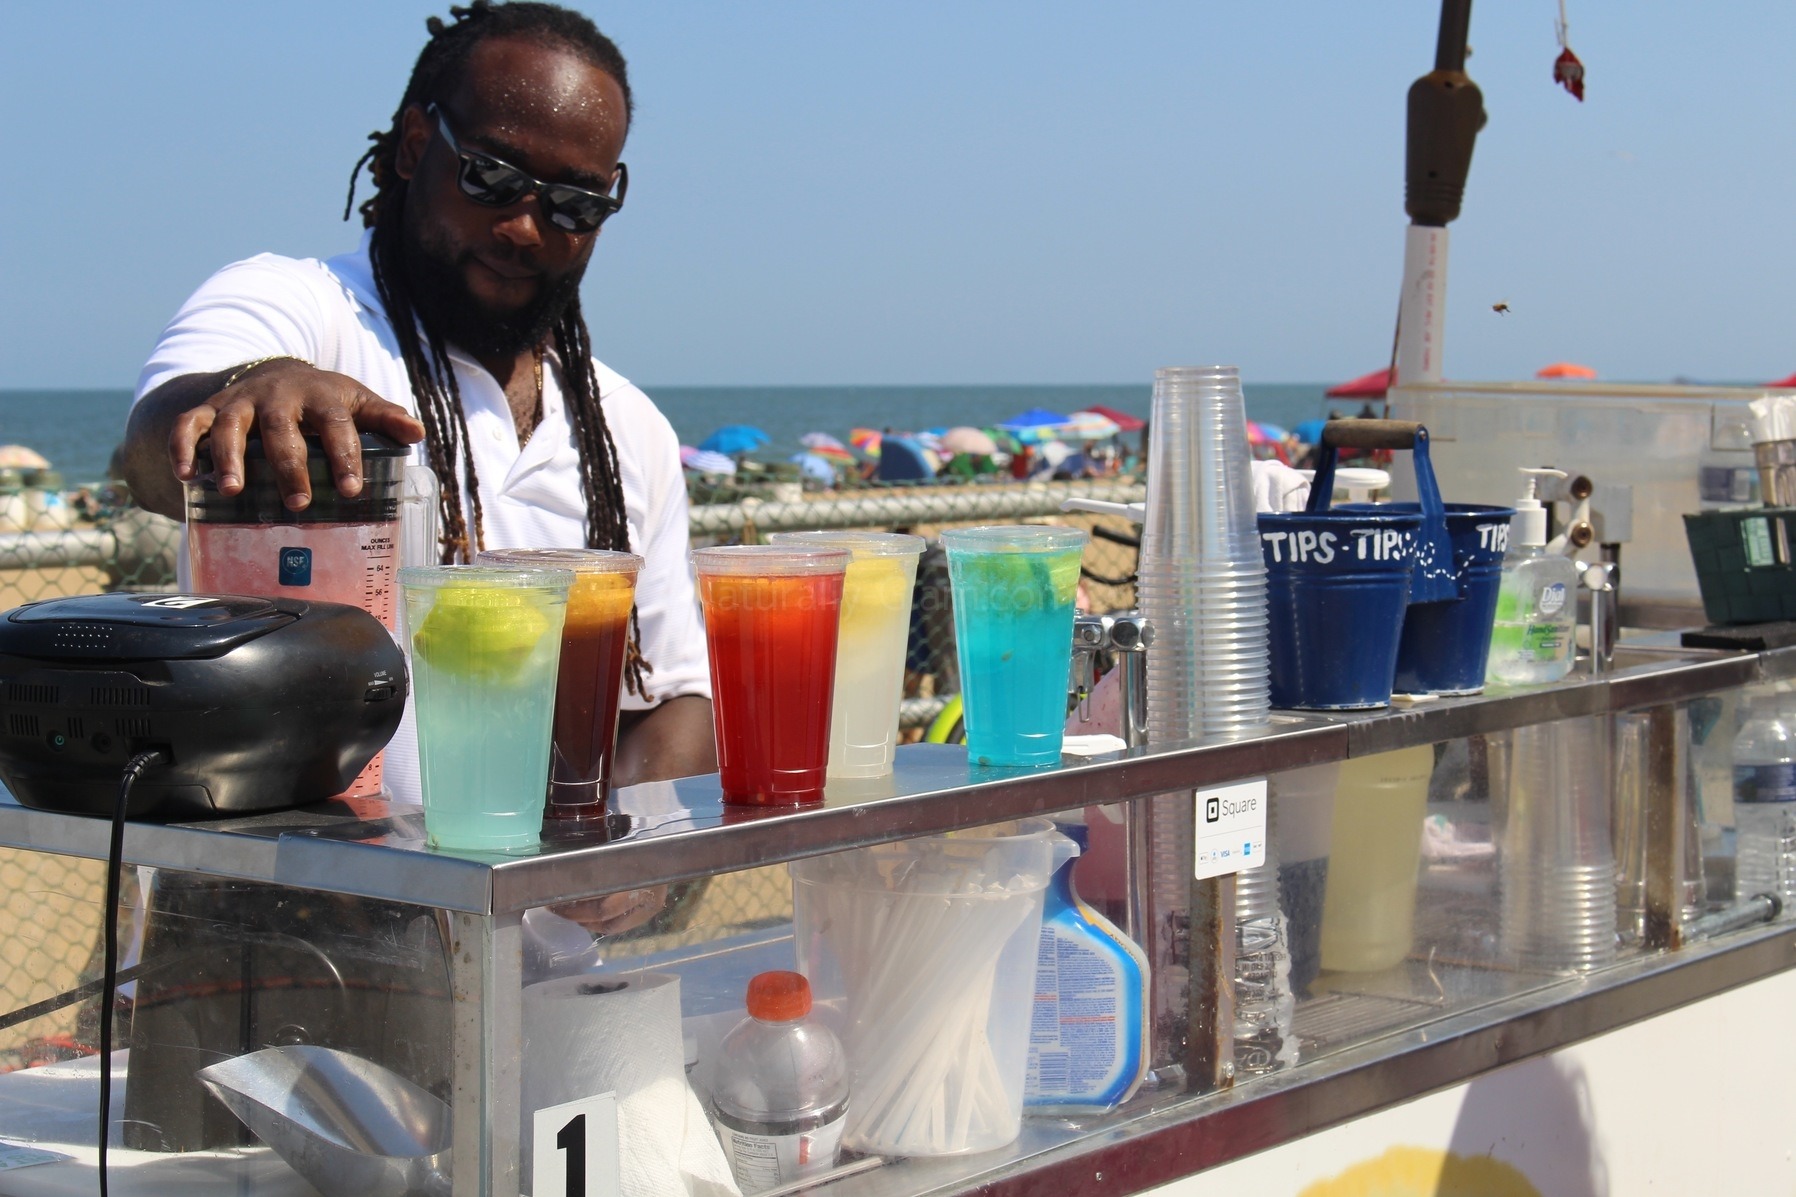 Africana Va Beach food vendors